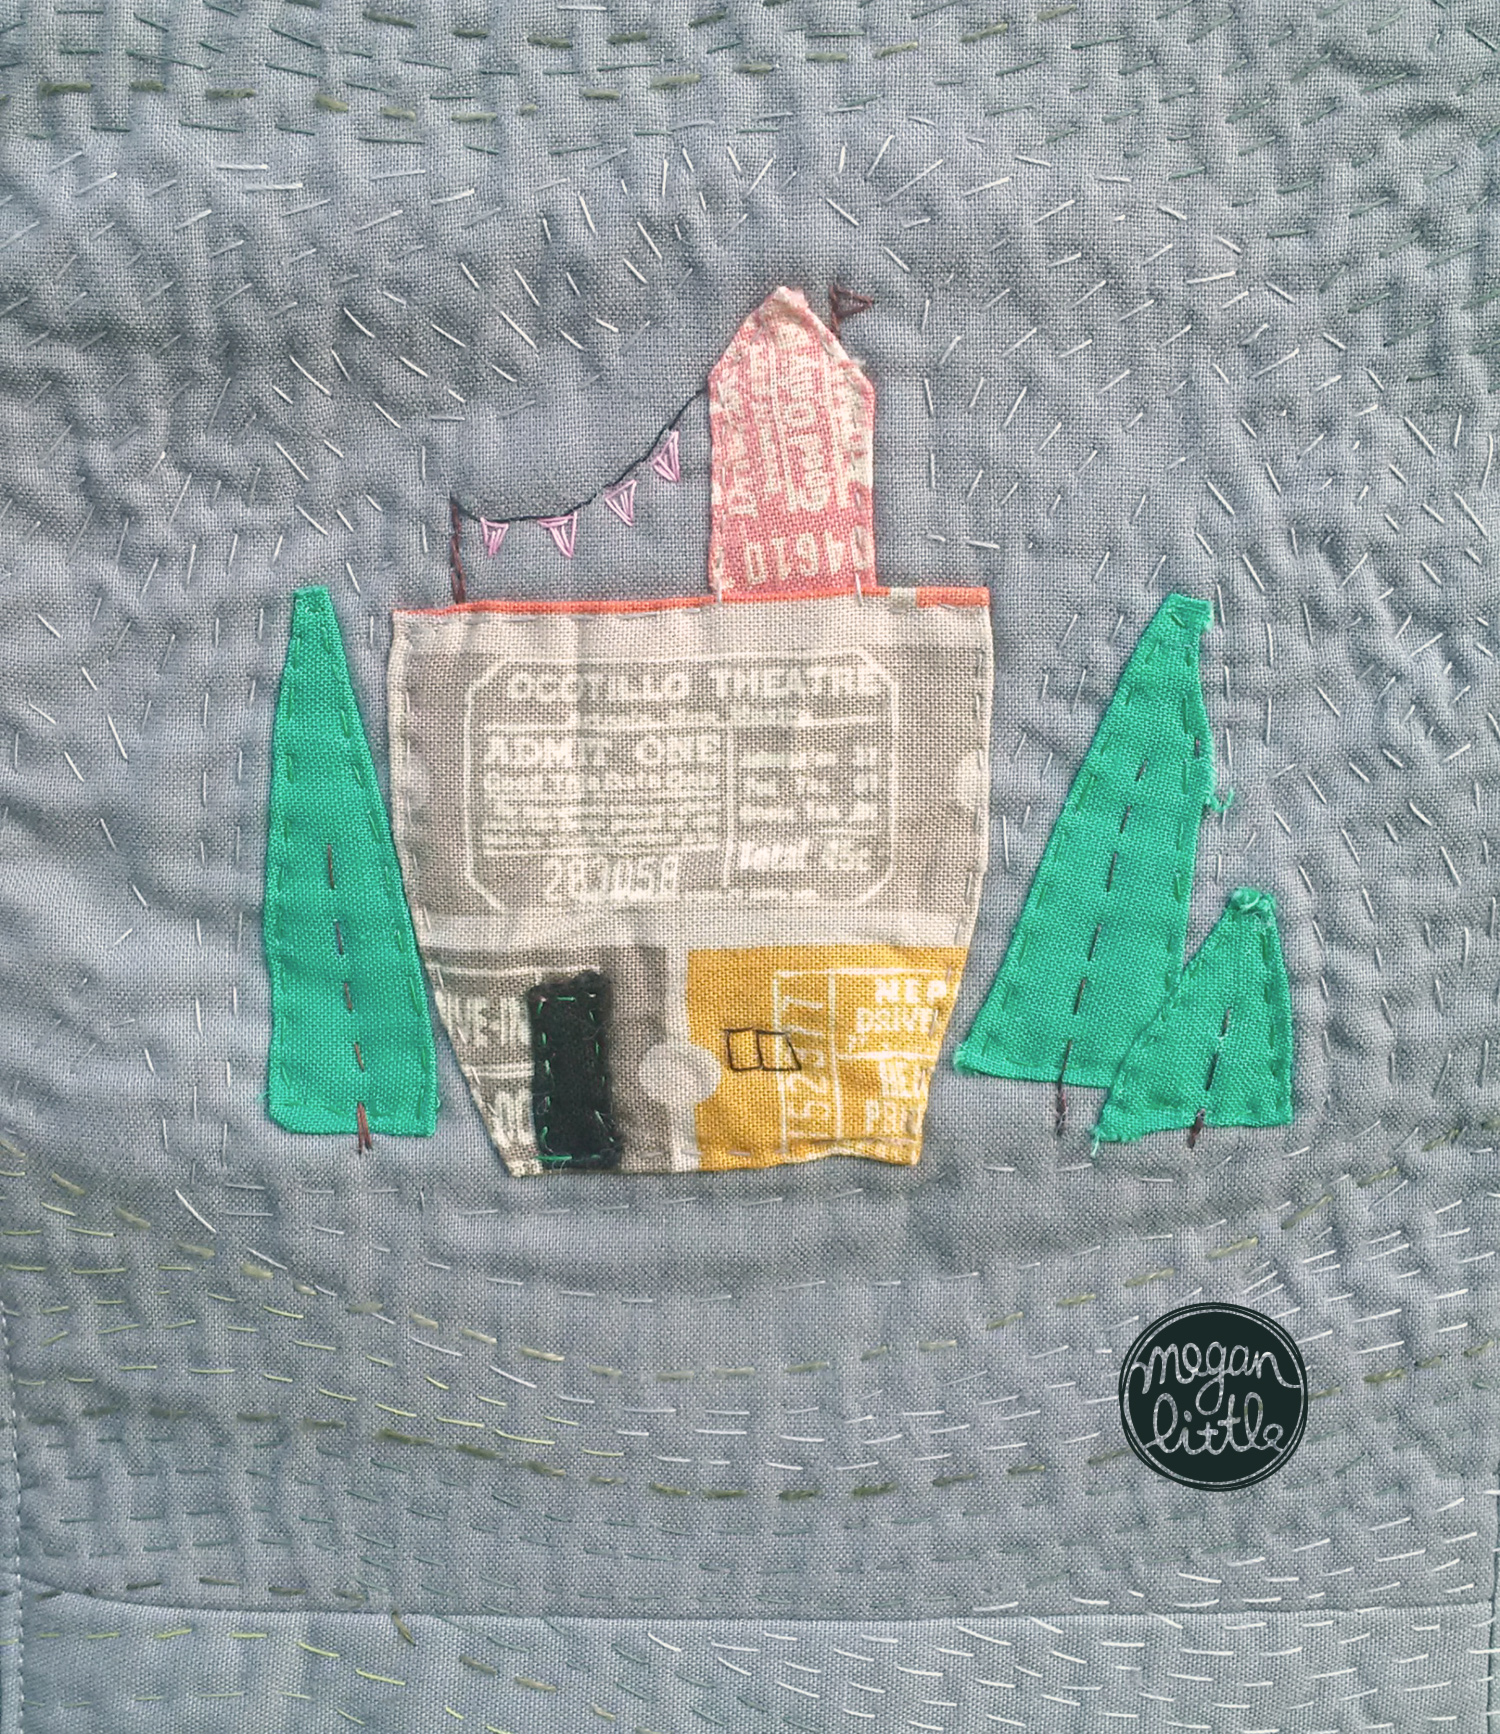 housequilt-close6_meganlittle.jpg